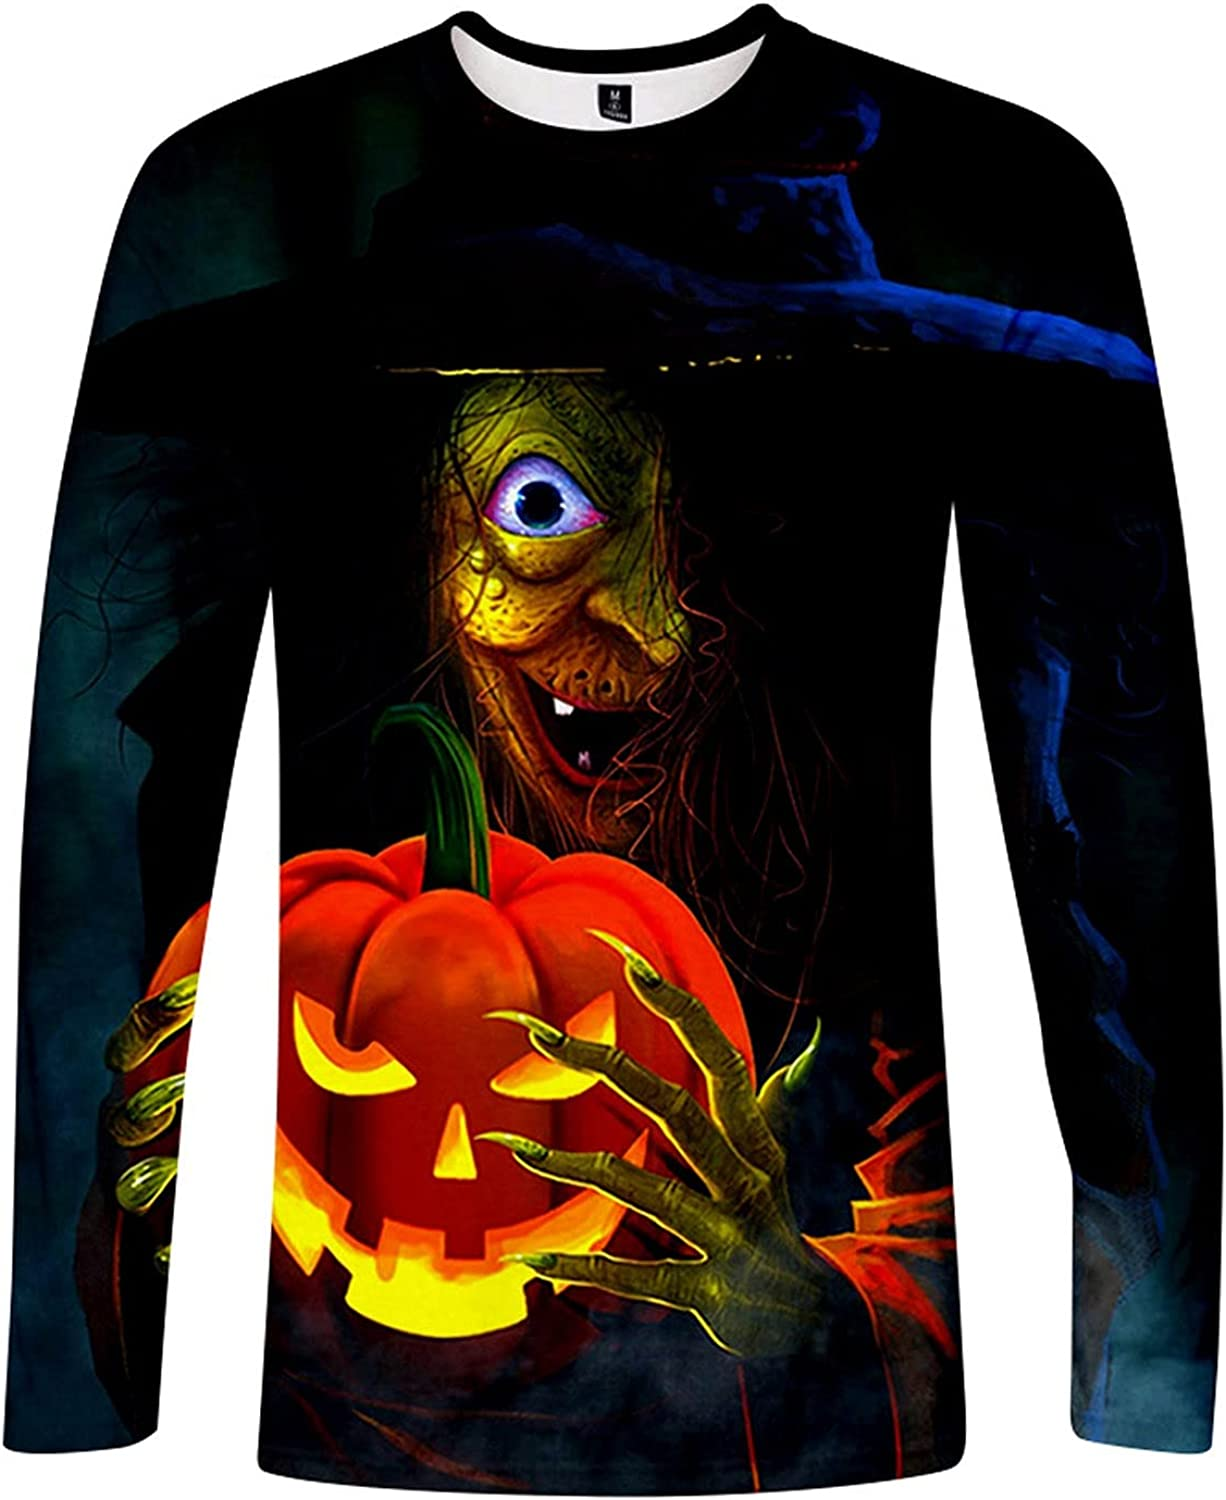 Men's Pullover Tops Halloween 3D Printed Pumpkin Casual Ghoust Horror Long Sleeve Blouse,Graffiti Graphic Blouse